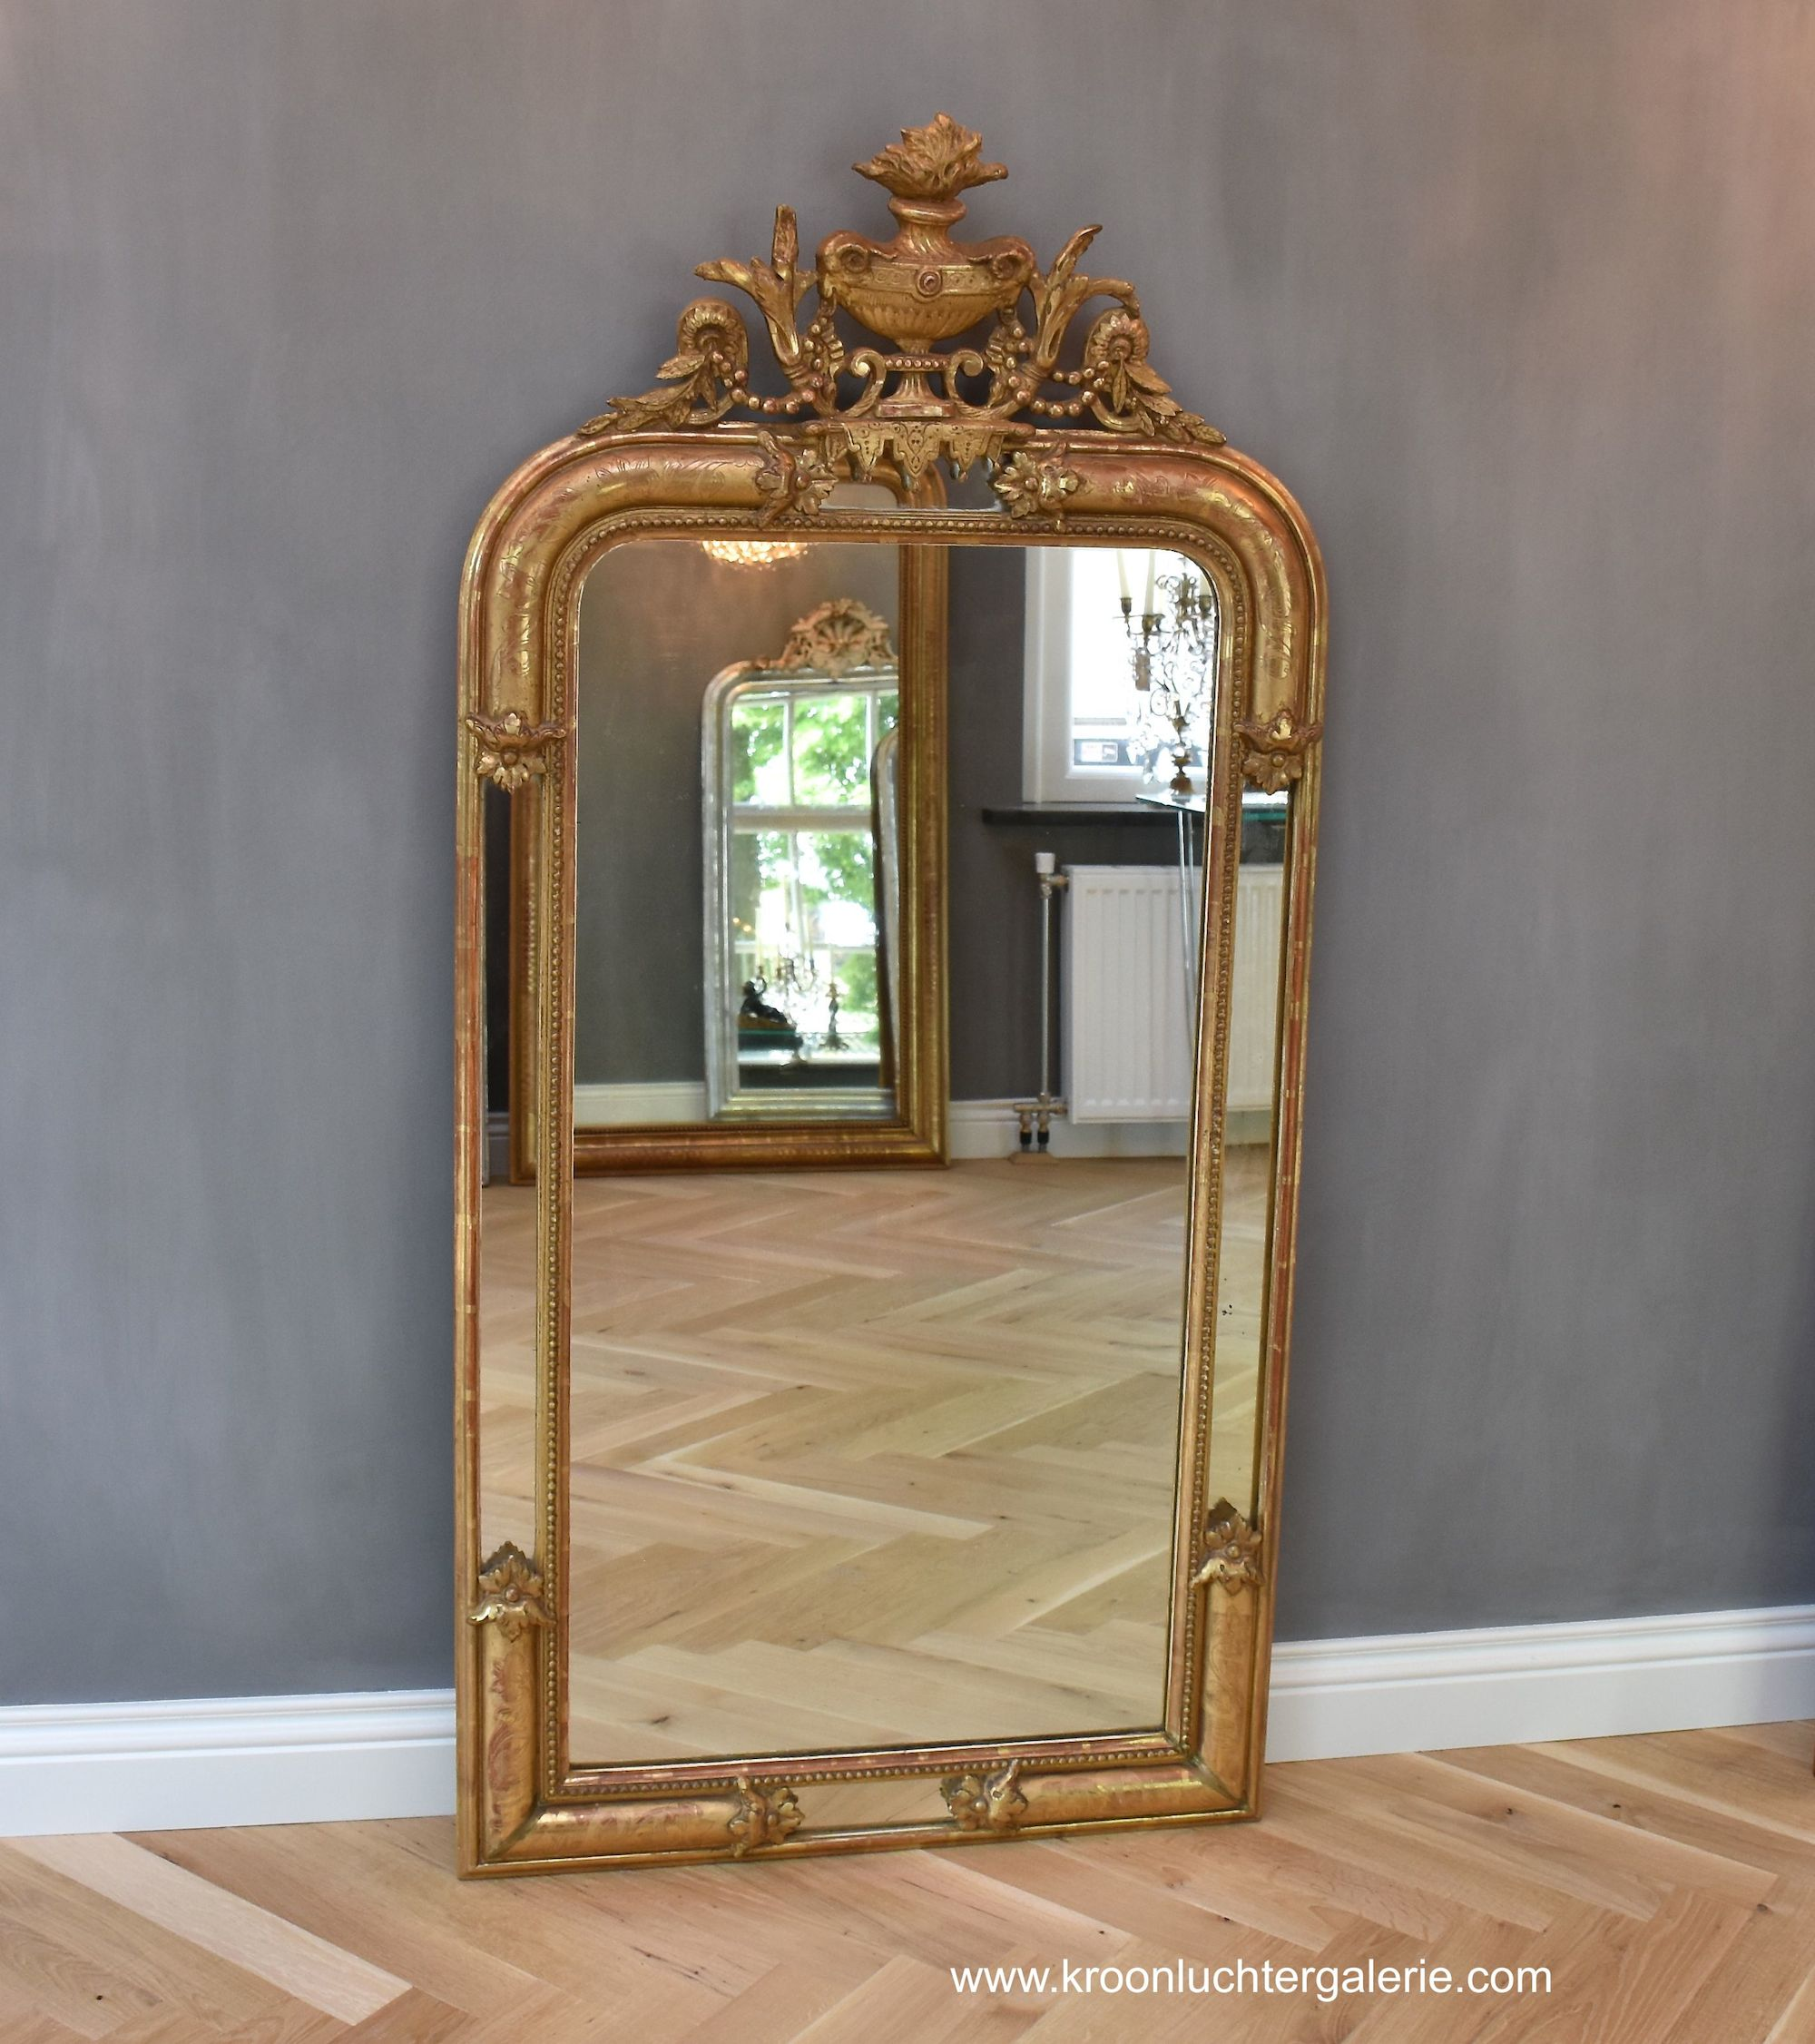 19th c.French gold-leaf mirror with a crown